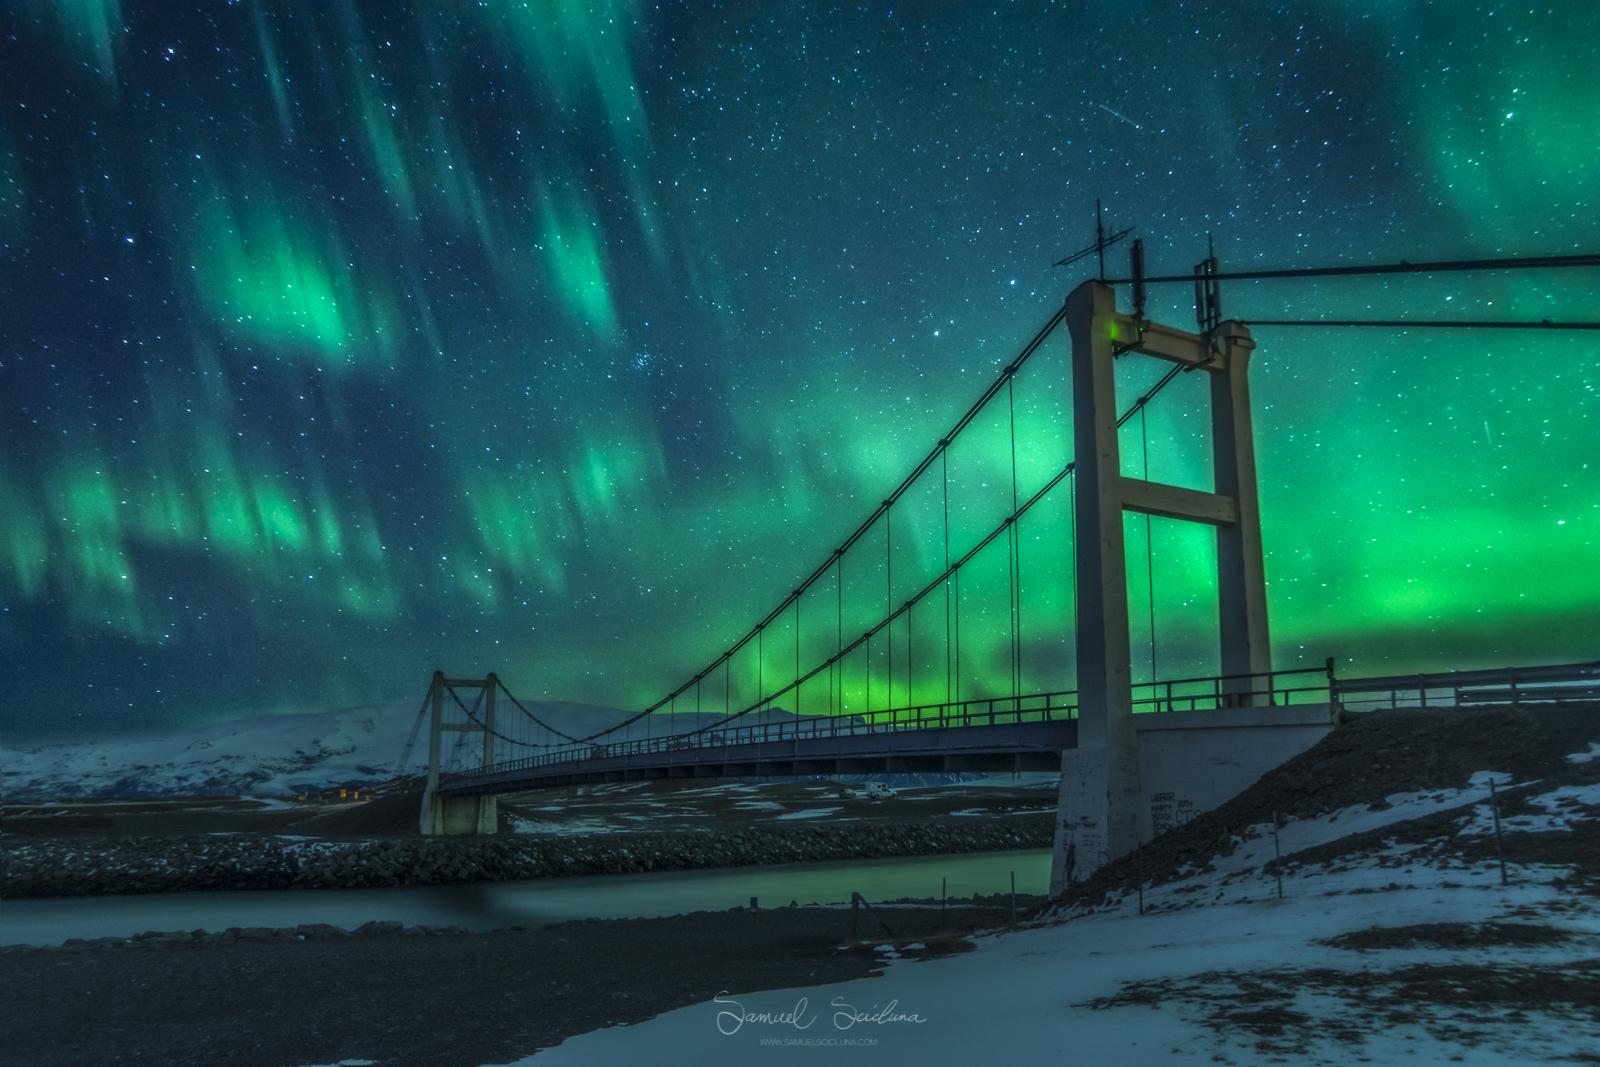 An explosion of Auroral activity above the famous suspension bridge at Jökulsárlón glacier lagoon.